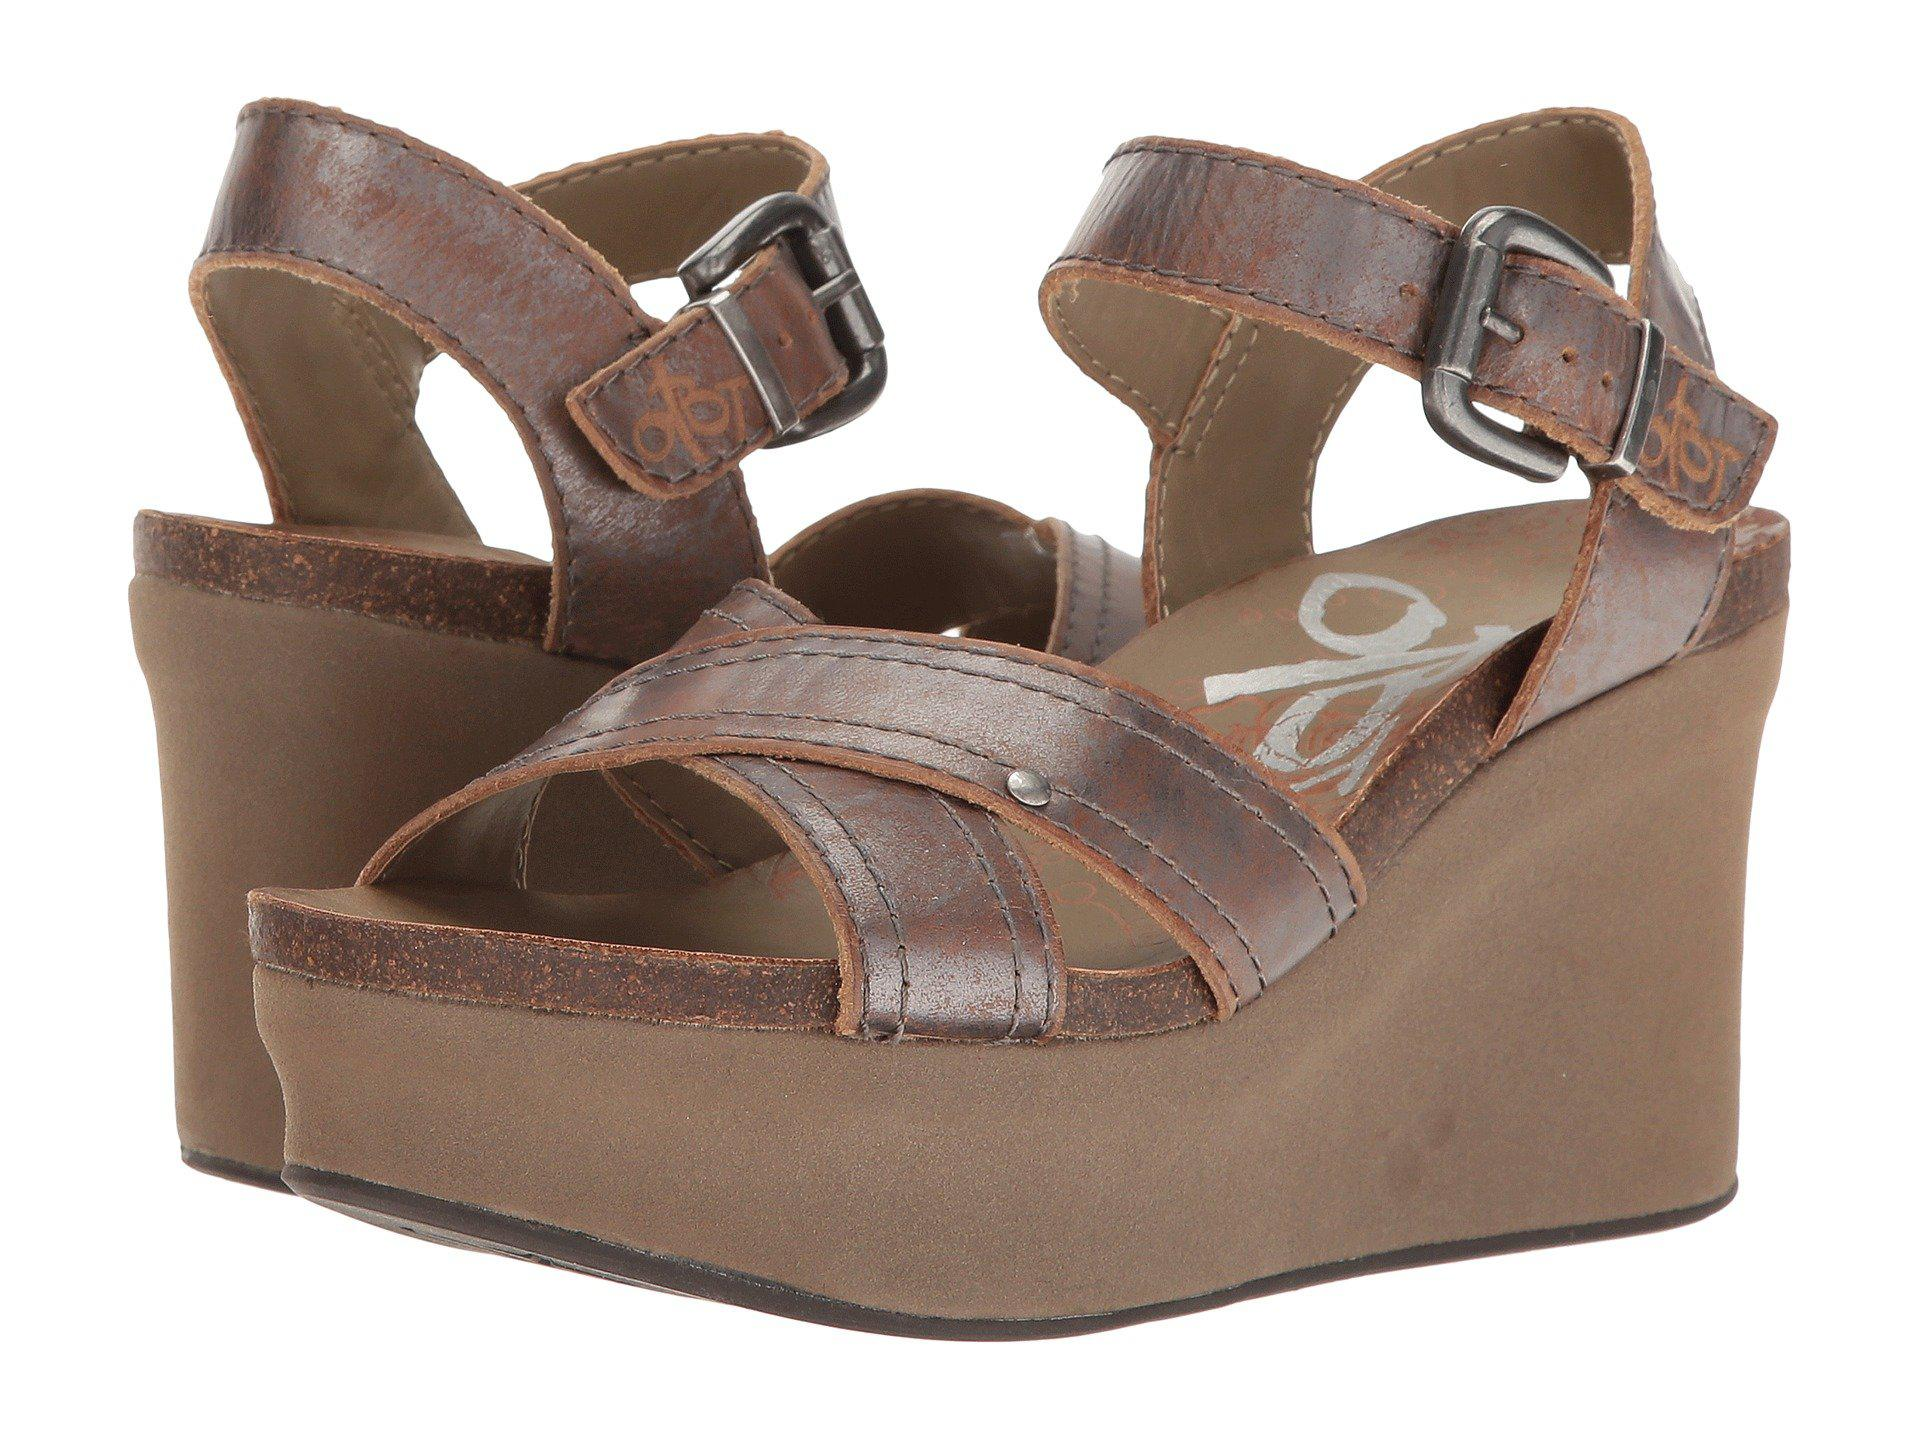 40c34fcc789 Lyst - Otbt Bee Cave (black) Women s Wedge Shoes in Brown